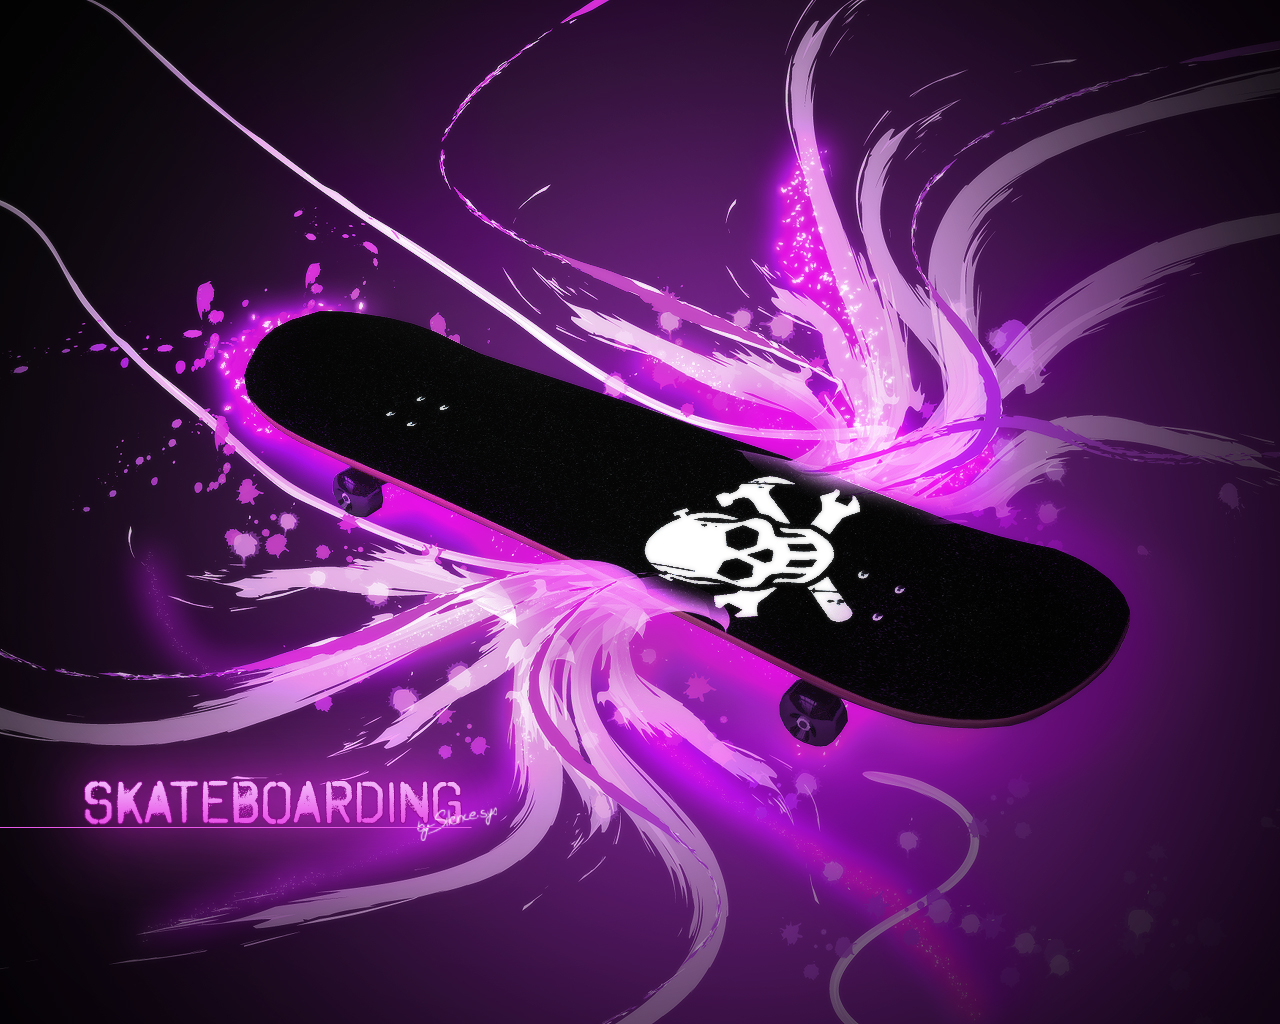 Really Cool Skateboards 16 crazy cool wallpapers for 1280x1024